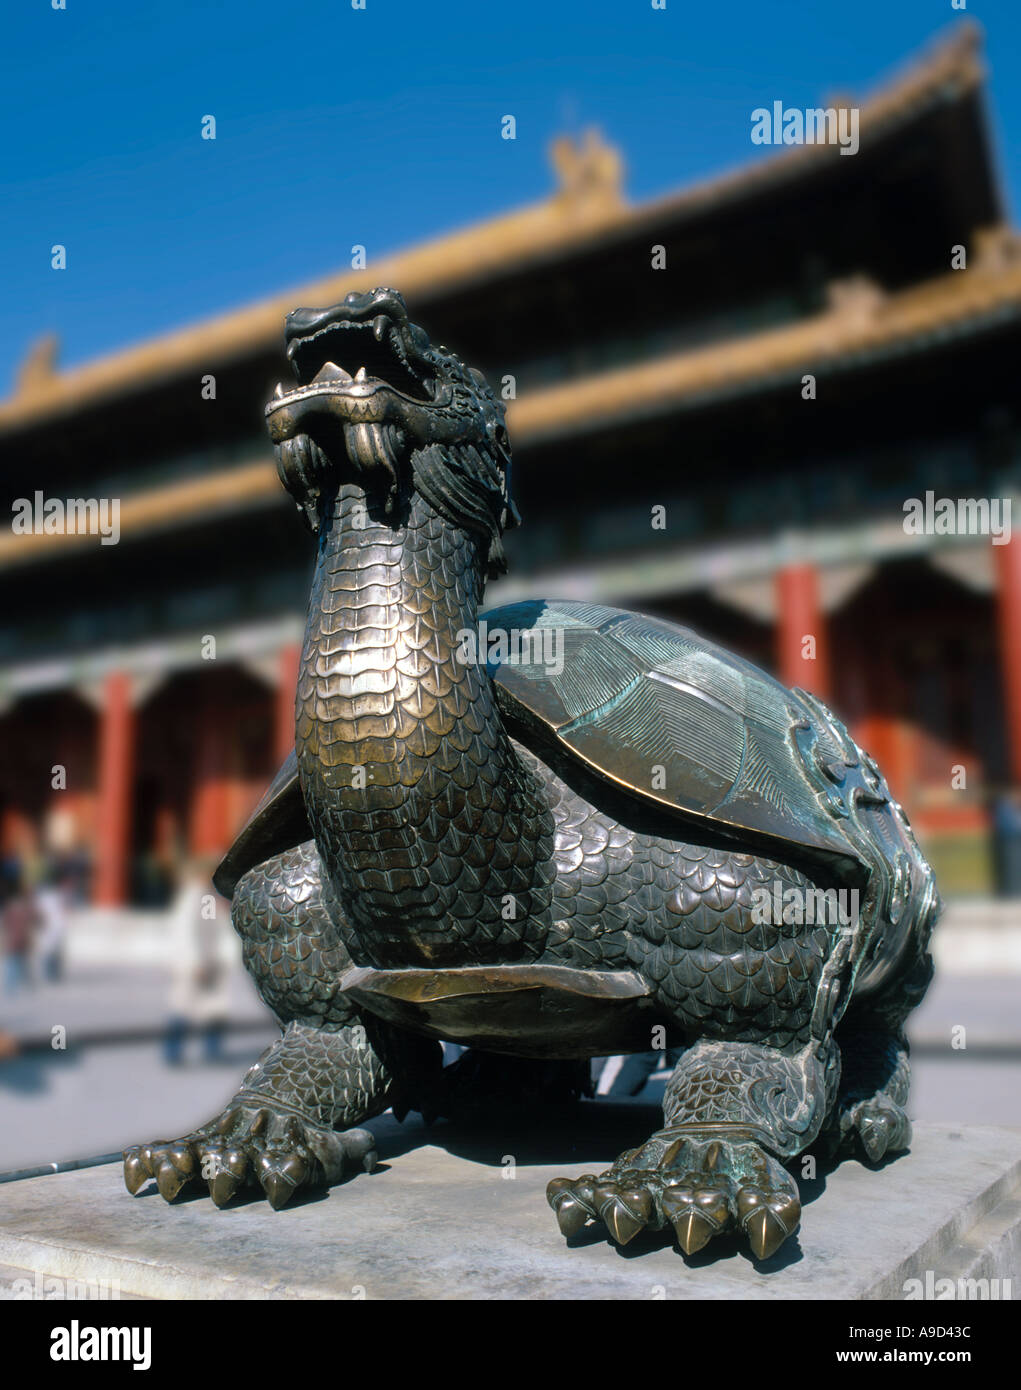 Bronze statue of a turtle with a dragon's head in front of the Tai He Dian Hall, Imperial Palace, Forbidden City, Beijing, China - Stock Image